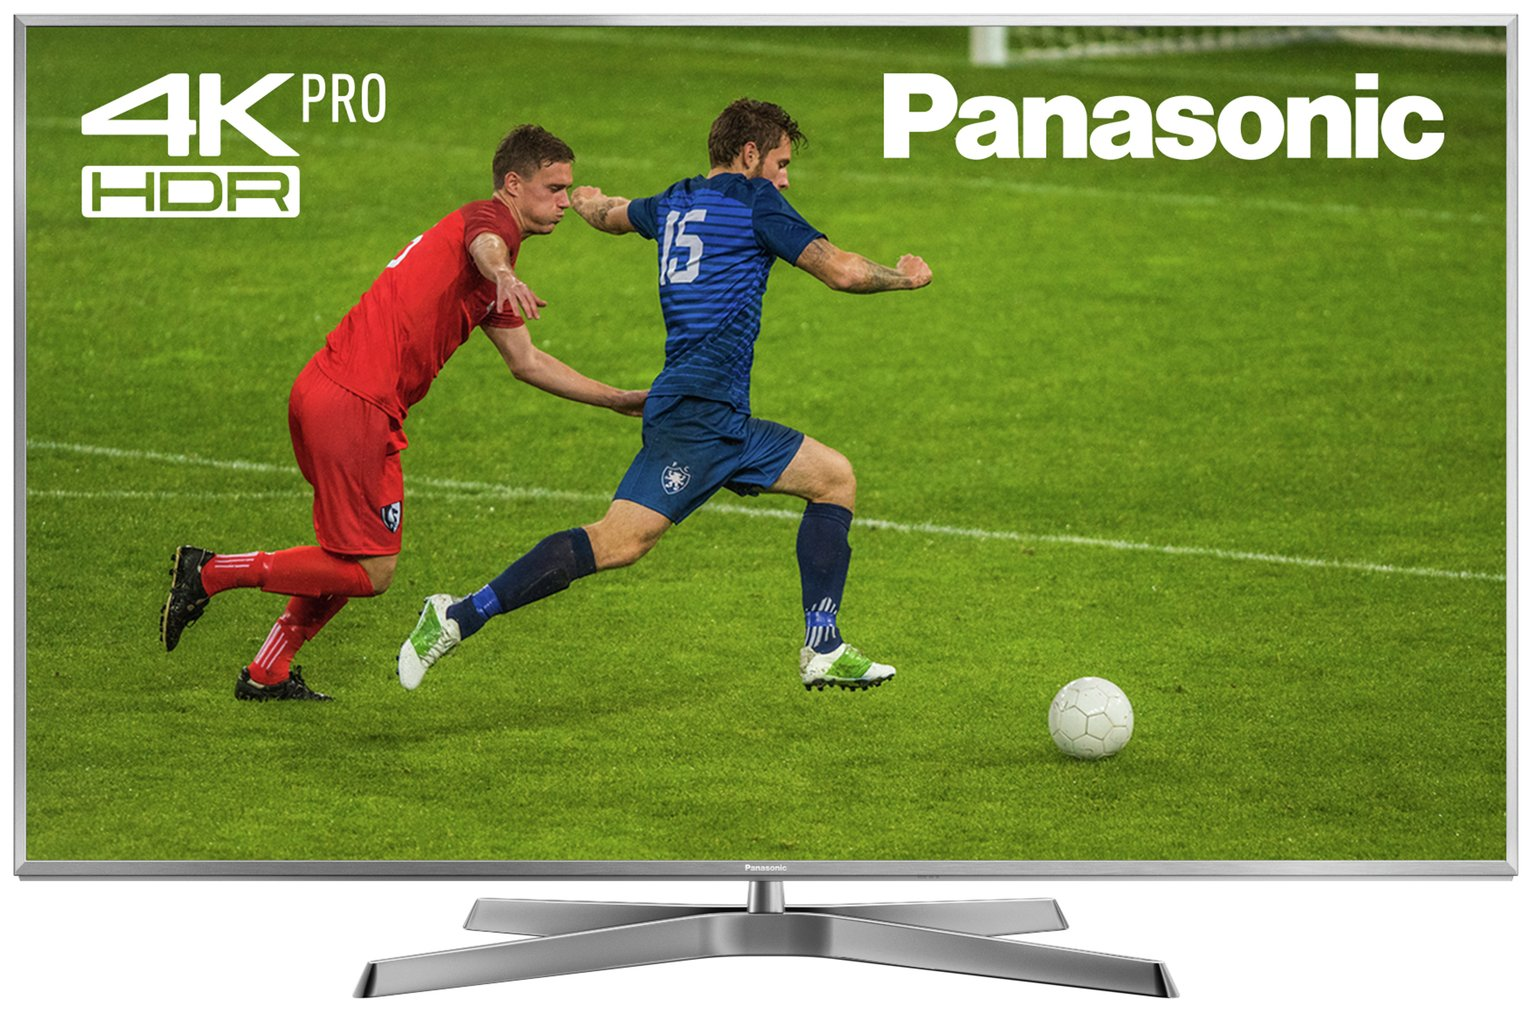 Panasonic Panasonic TX-65EX750B 65 Inch 4K Ultra HD Smart TV